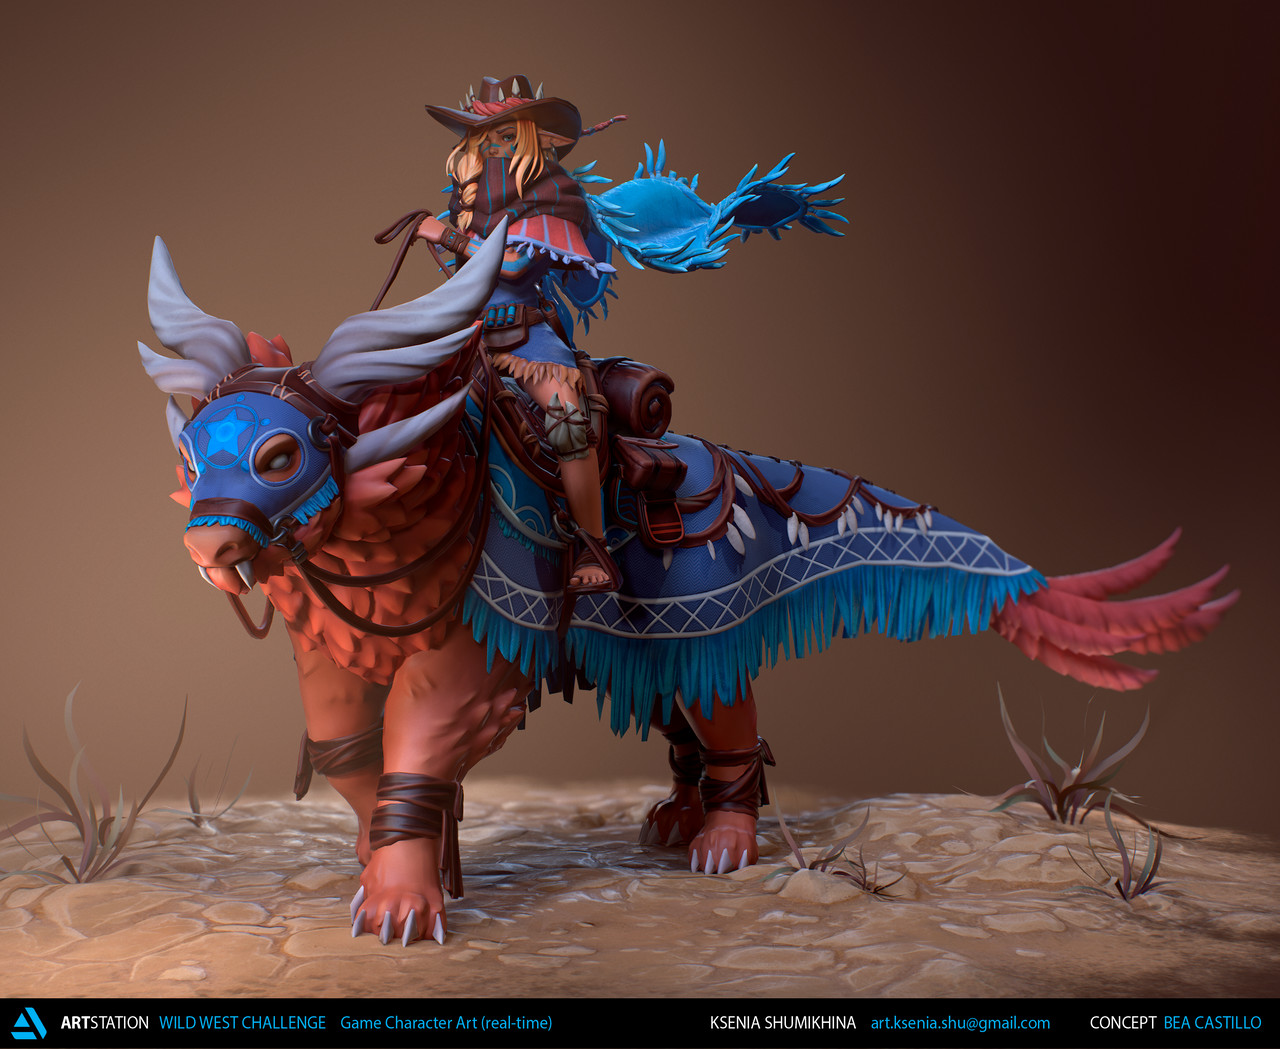 Honorable Mention, Wild West: Game Character Art (real-time)